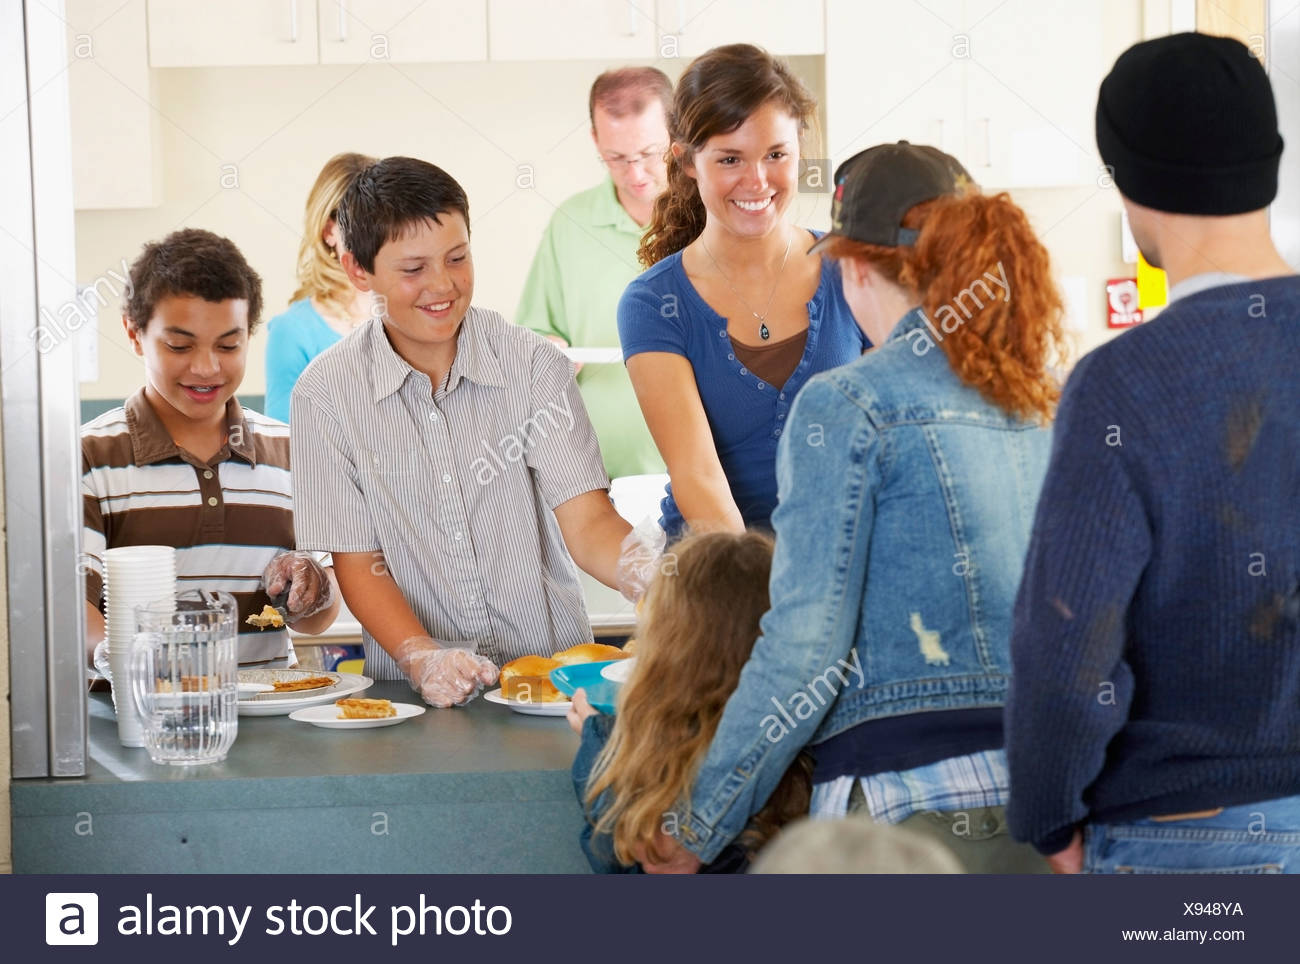 Group Of People At Community Buffet - Stock Image